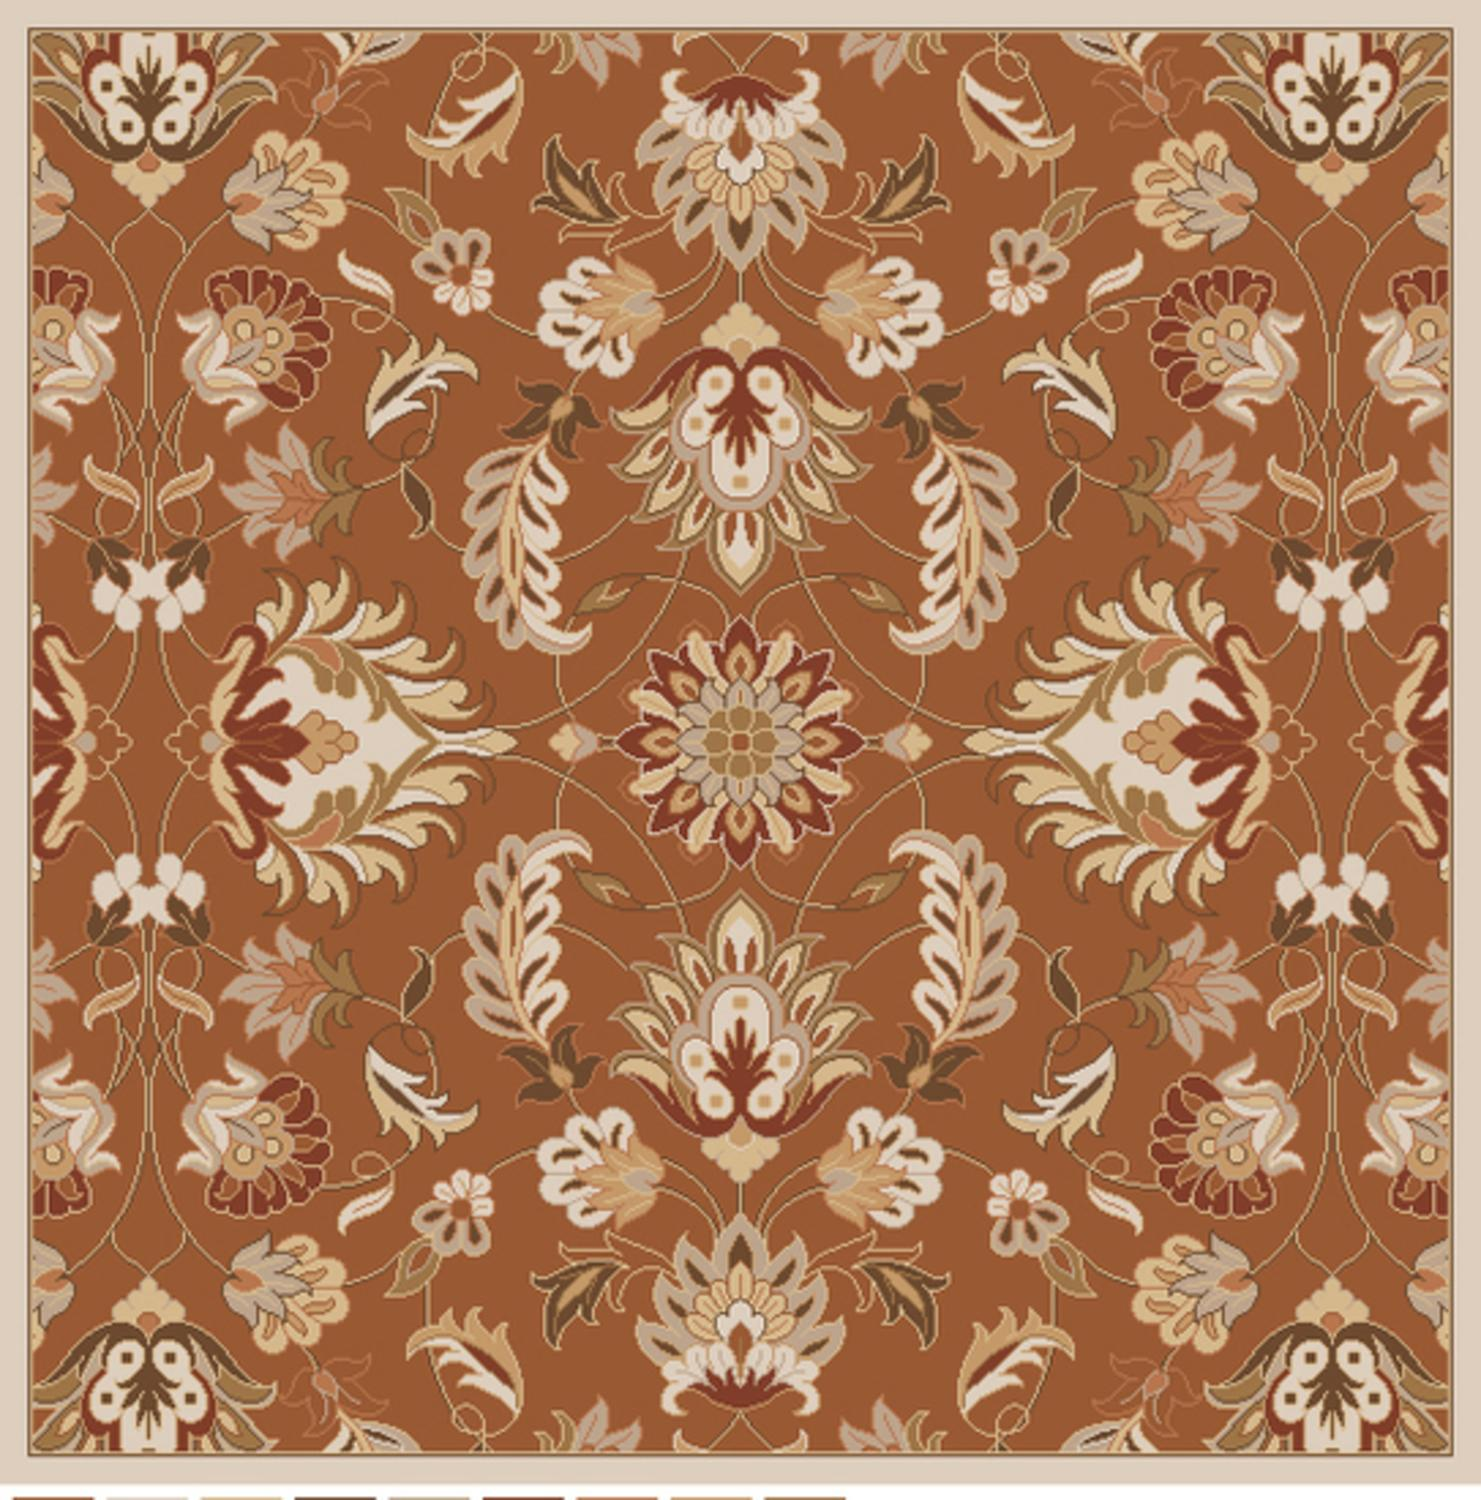 6' x 6' Crassus Brown and Cream Hand Tufted Square Wool Area Throw Rug